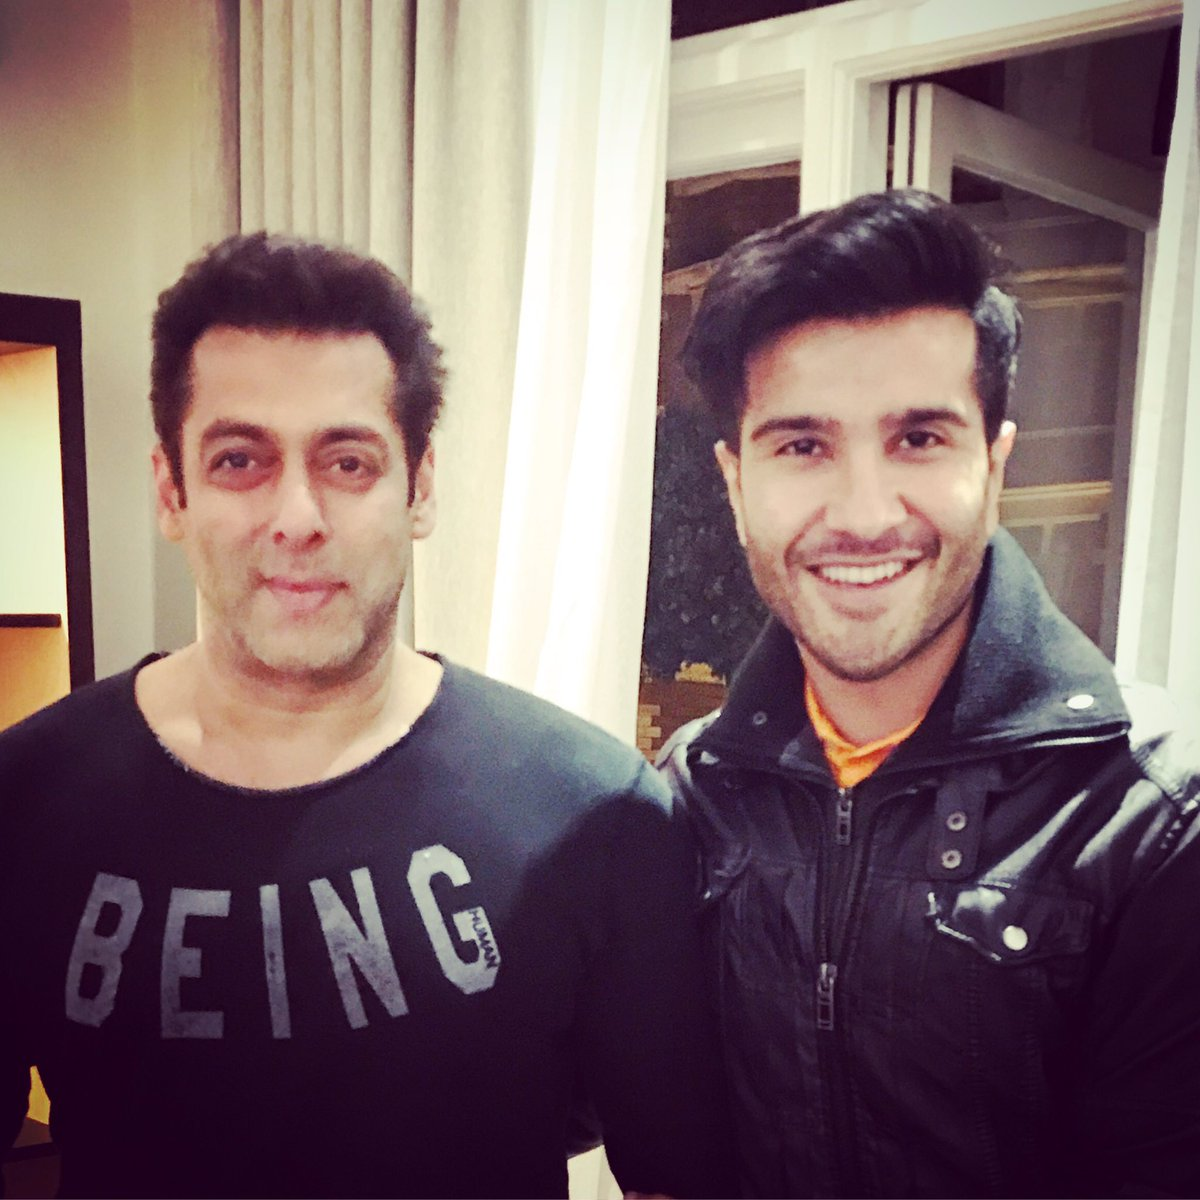 - Being Human on a Tuesday night in London. #London17 #SalmanKhan #FANMOMENT <br>http://pic.twitter.com/WIHdJp9njw